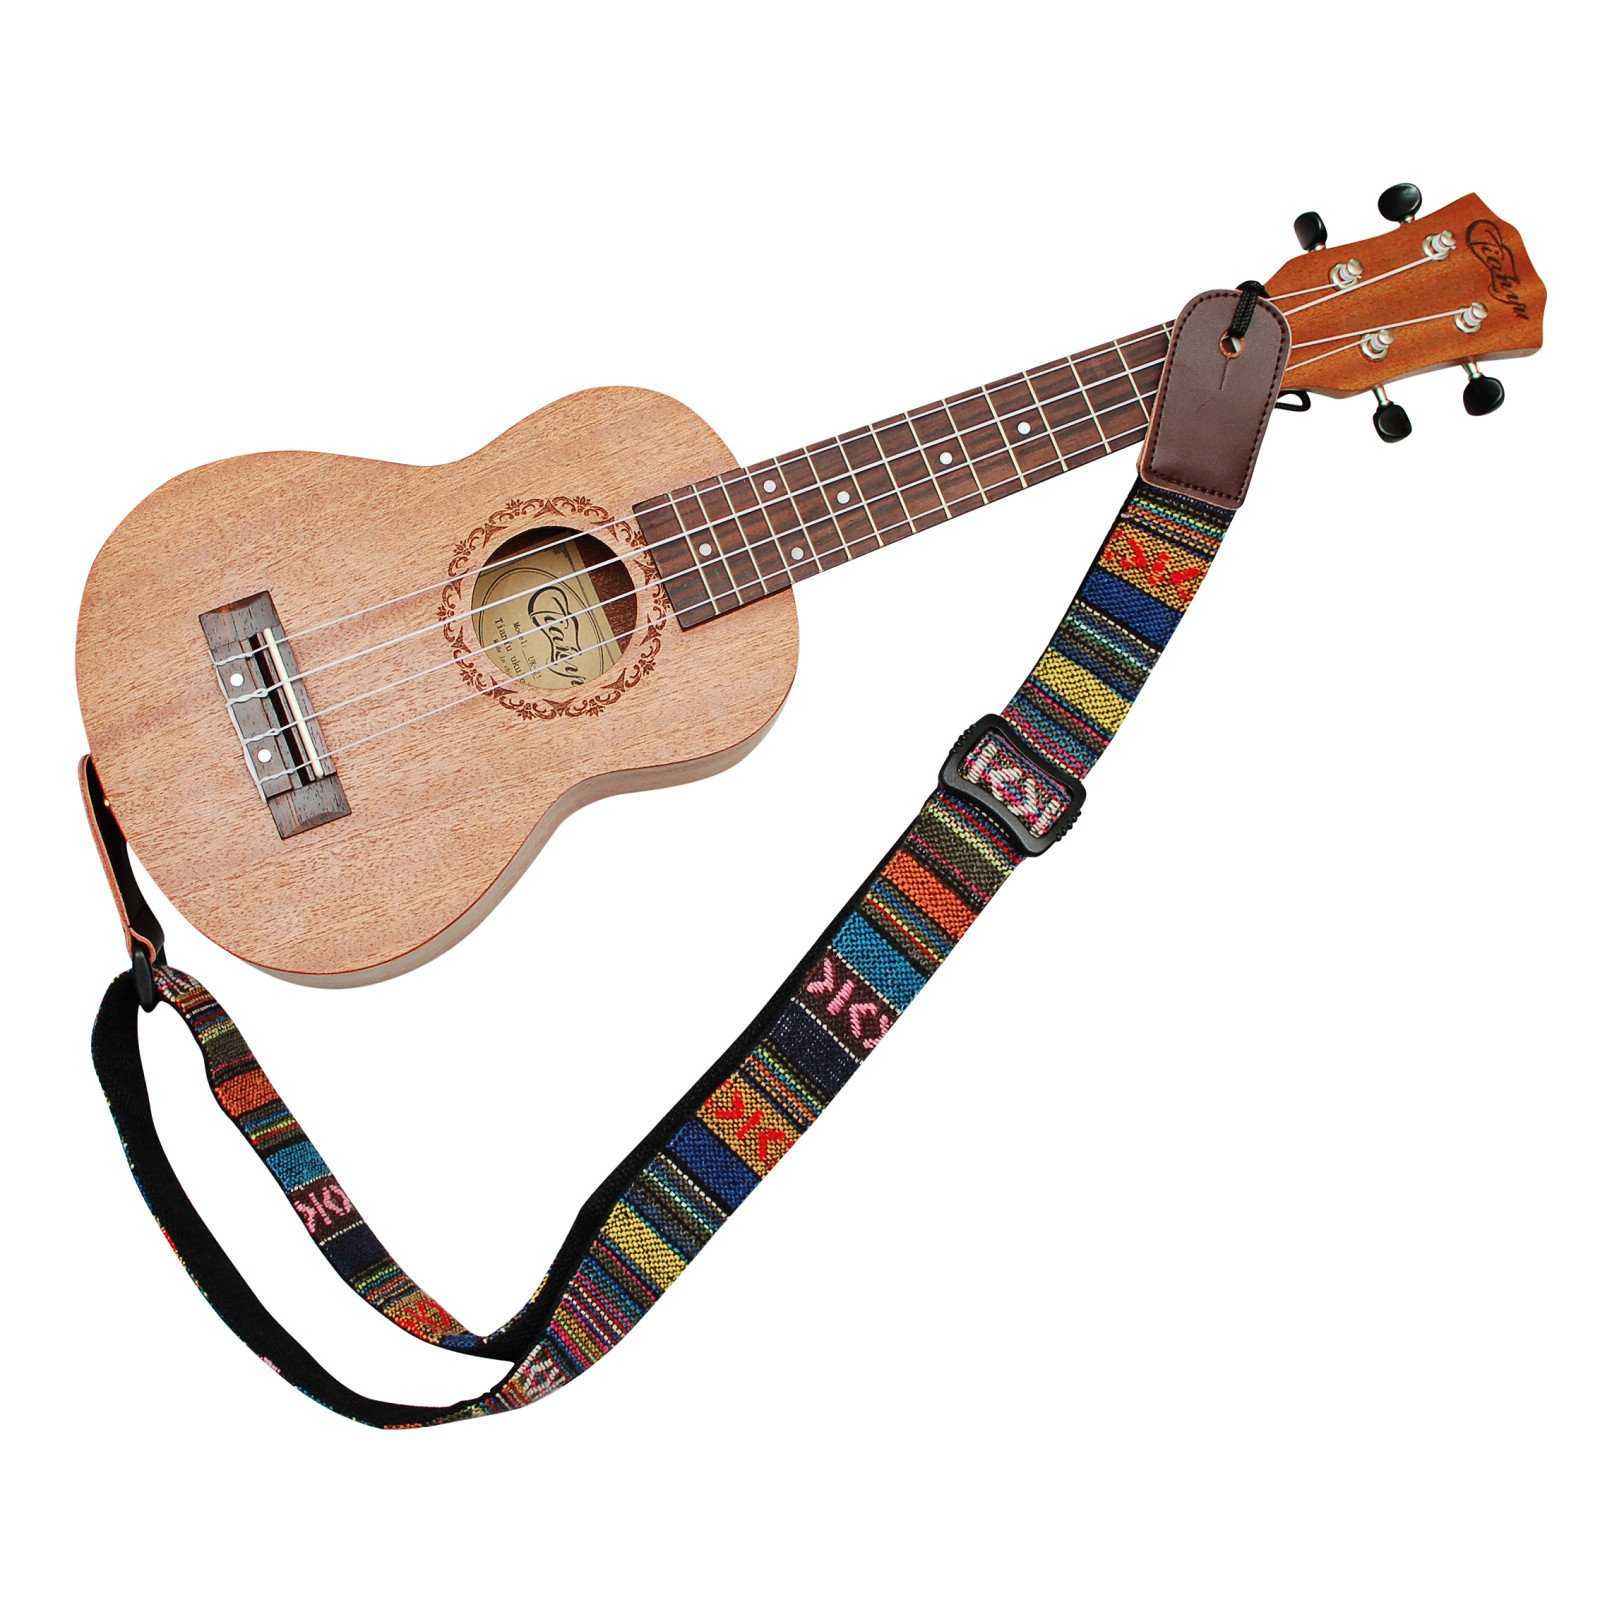 MUSIC FIRST Classic Country style Soft Cotton & Genuine Leather Ukulele Strap Ukulele Shoulder Strap Version 2.0